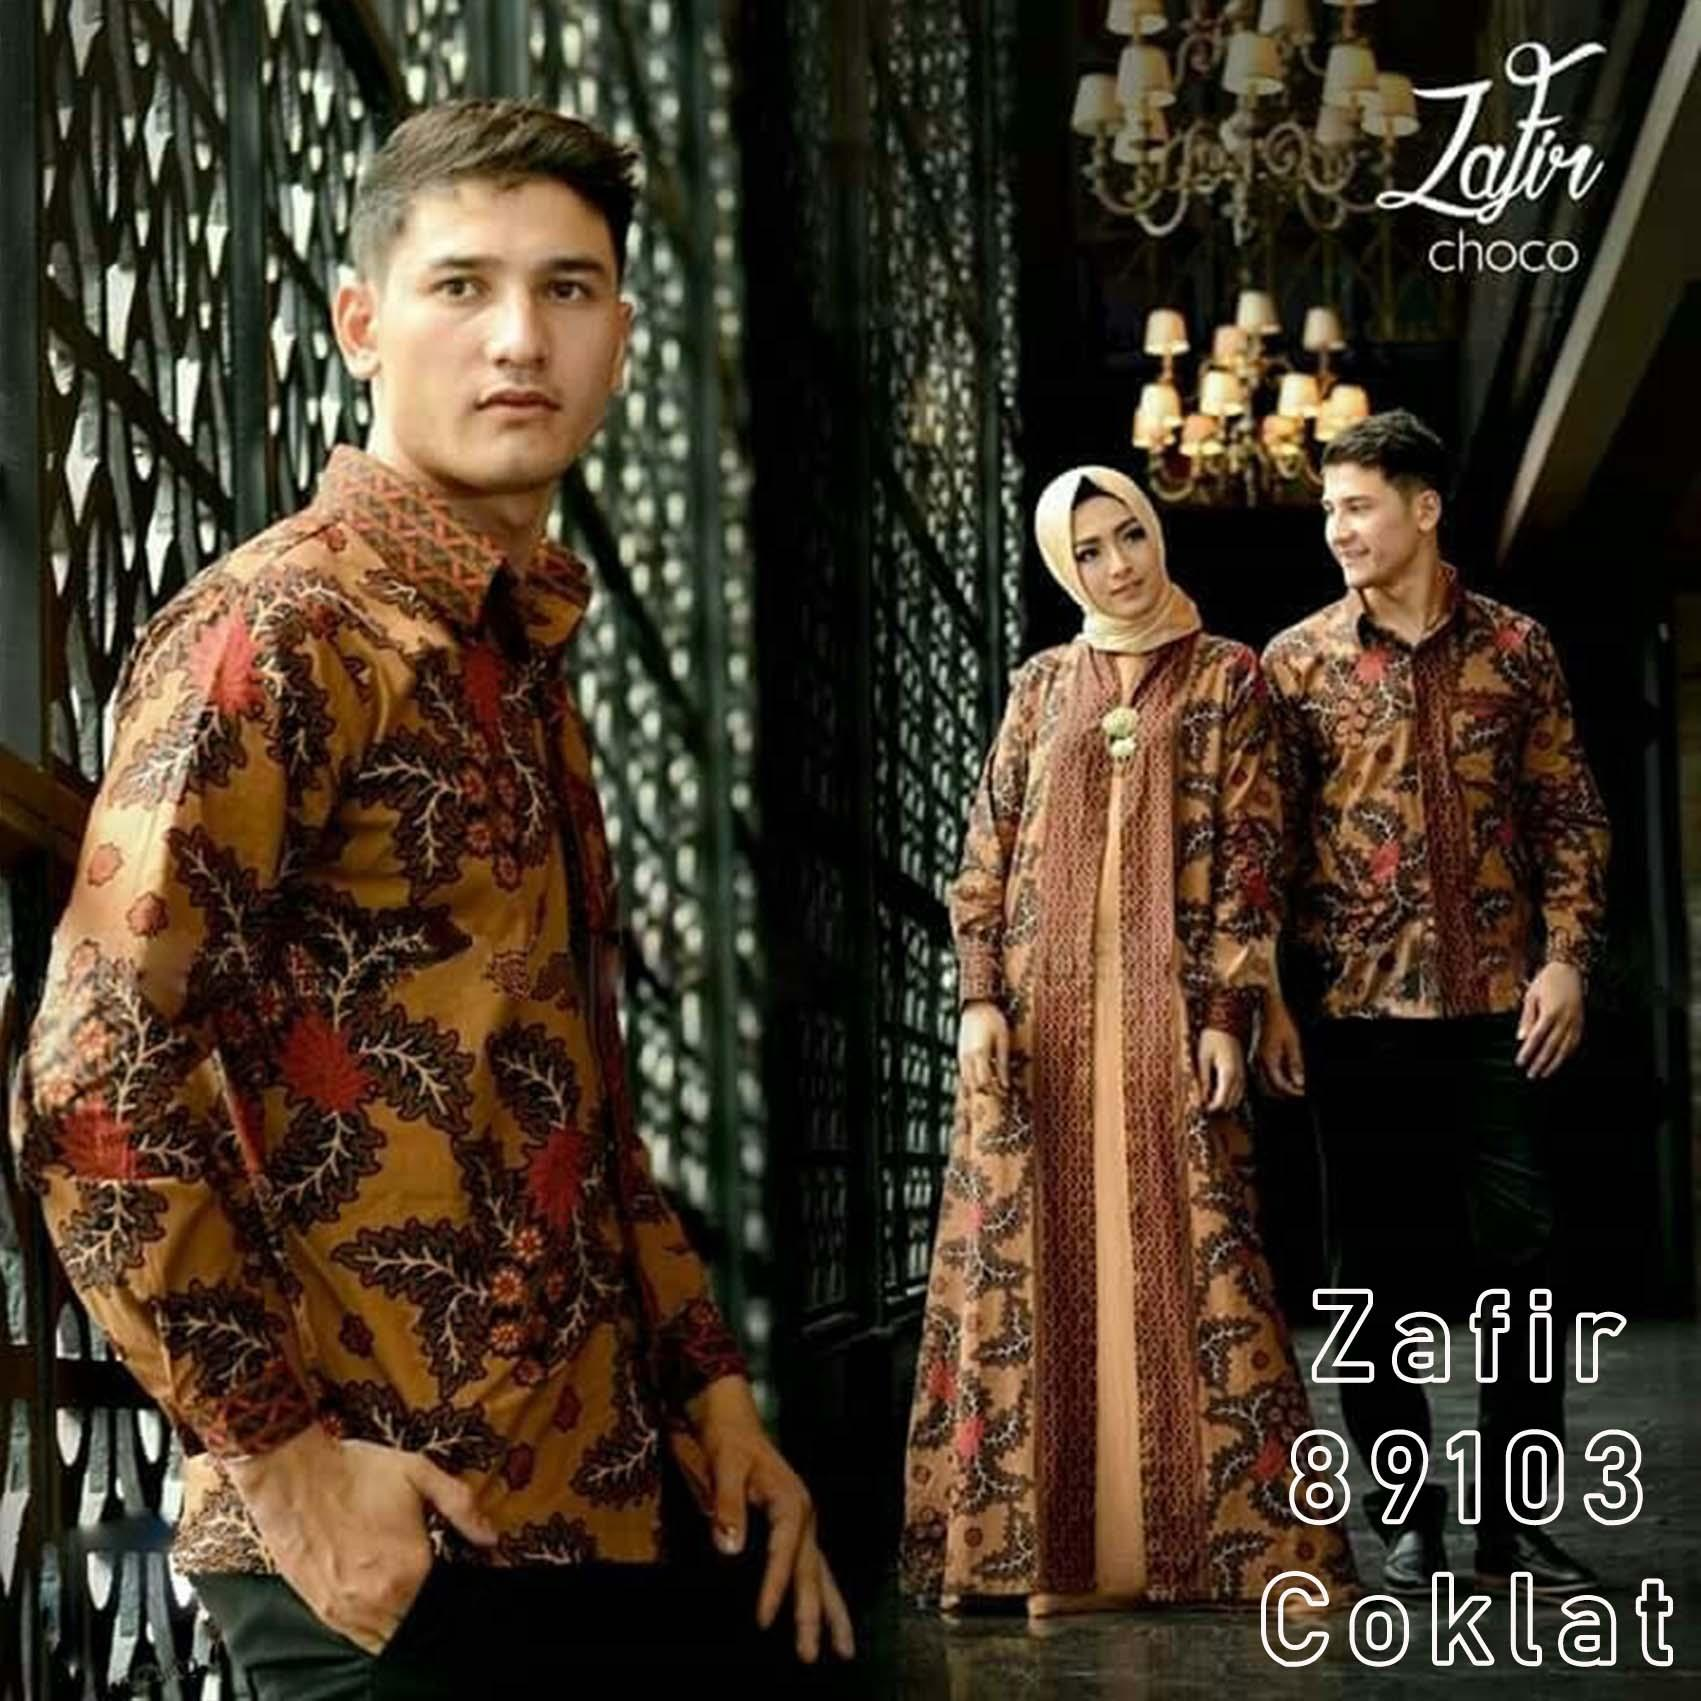 Asmiranda Blue Source · Suki Couple Batik Cewe Cowo Shinta. Source · baju batik couple Couple zafir coklat 89103